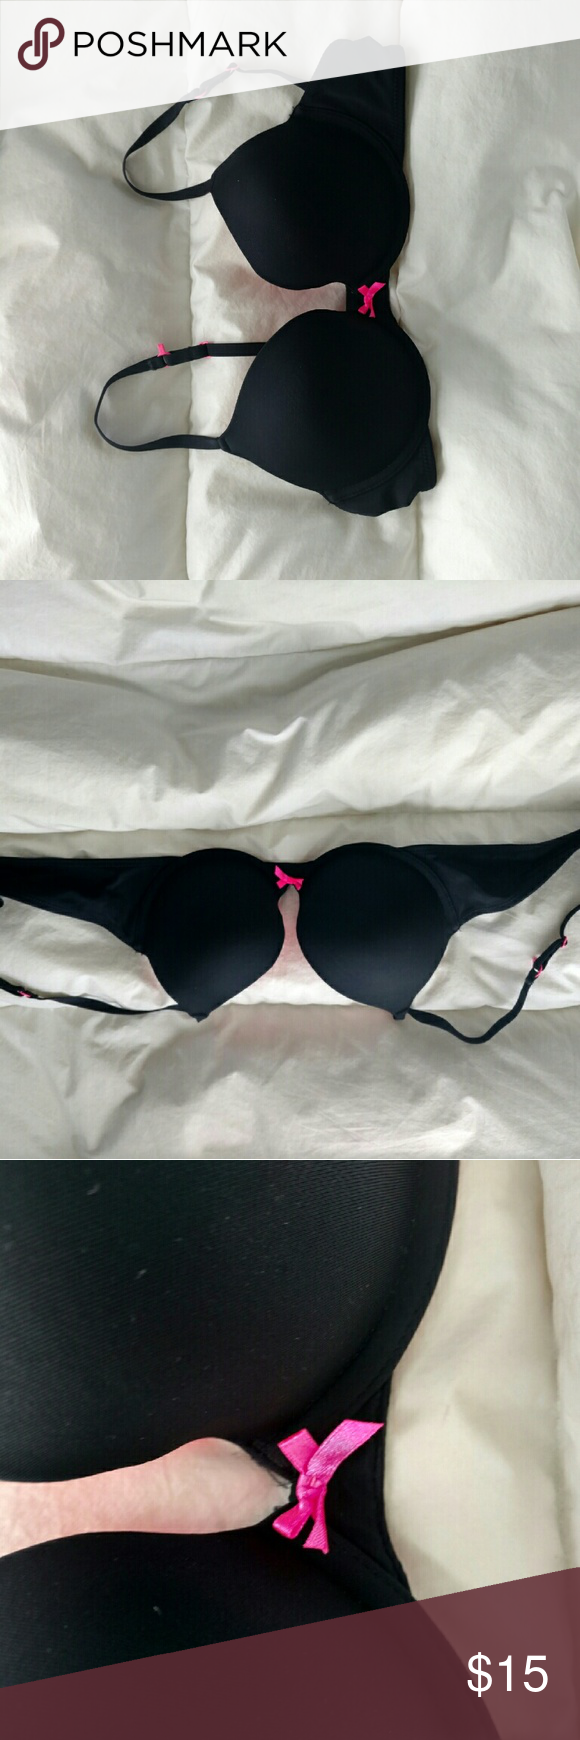 Simple black push up bra Push up bra black outside hot pink inside and bow. Push up one cup size, comfortable and slightly worn but still in good shape. Hand washed Xhilaration Intimates & Sleepwear Bras